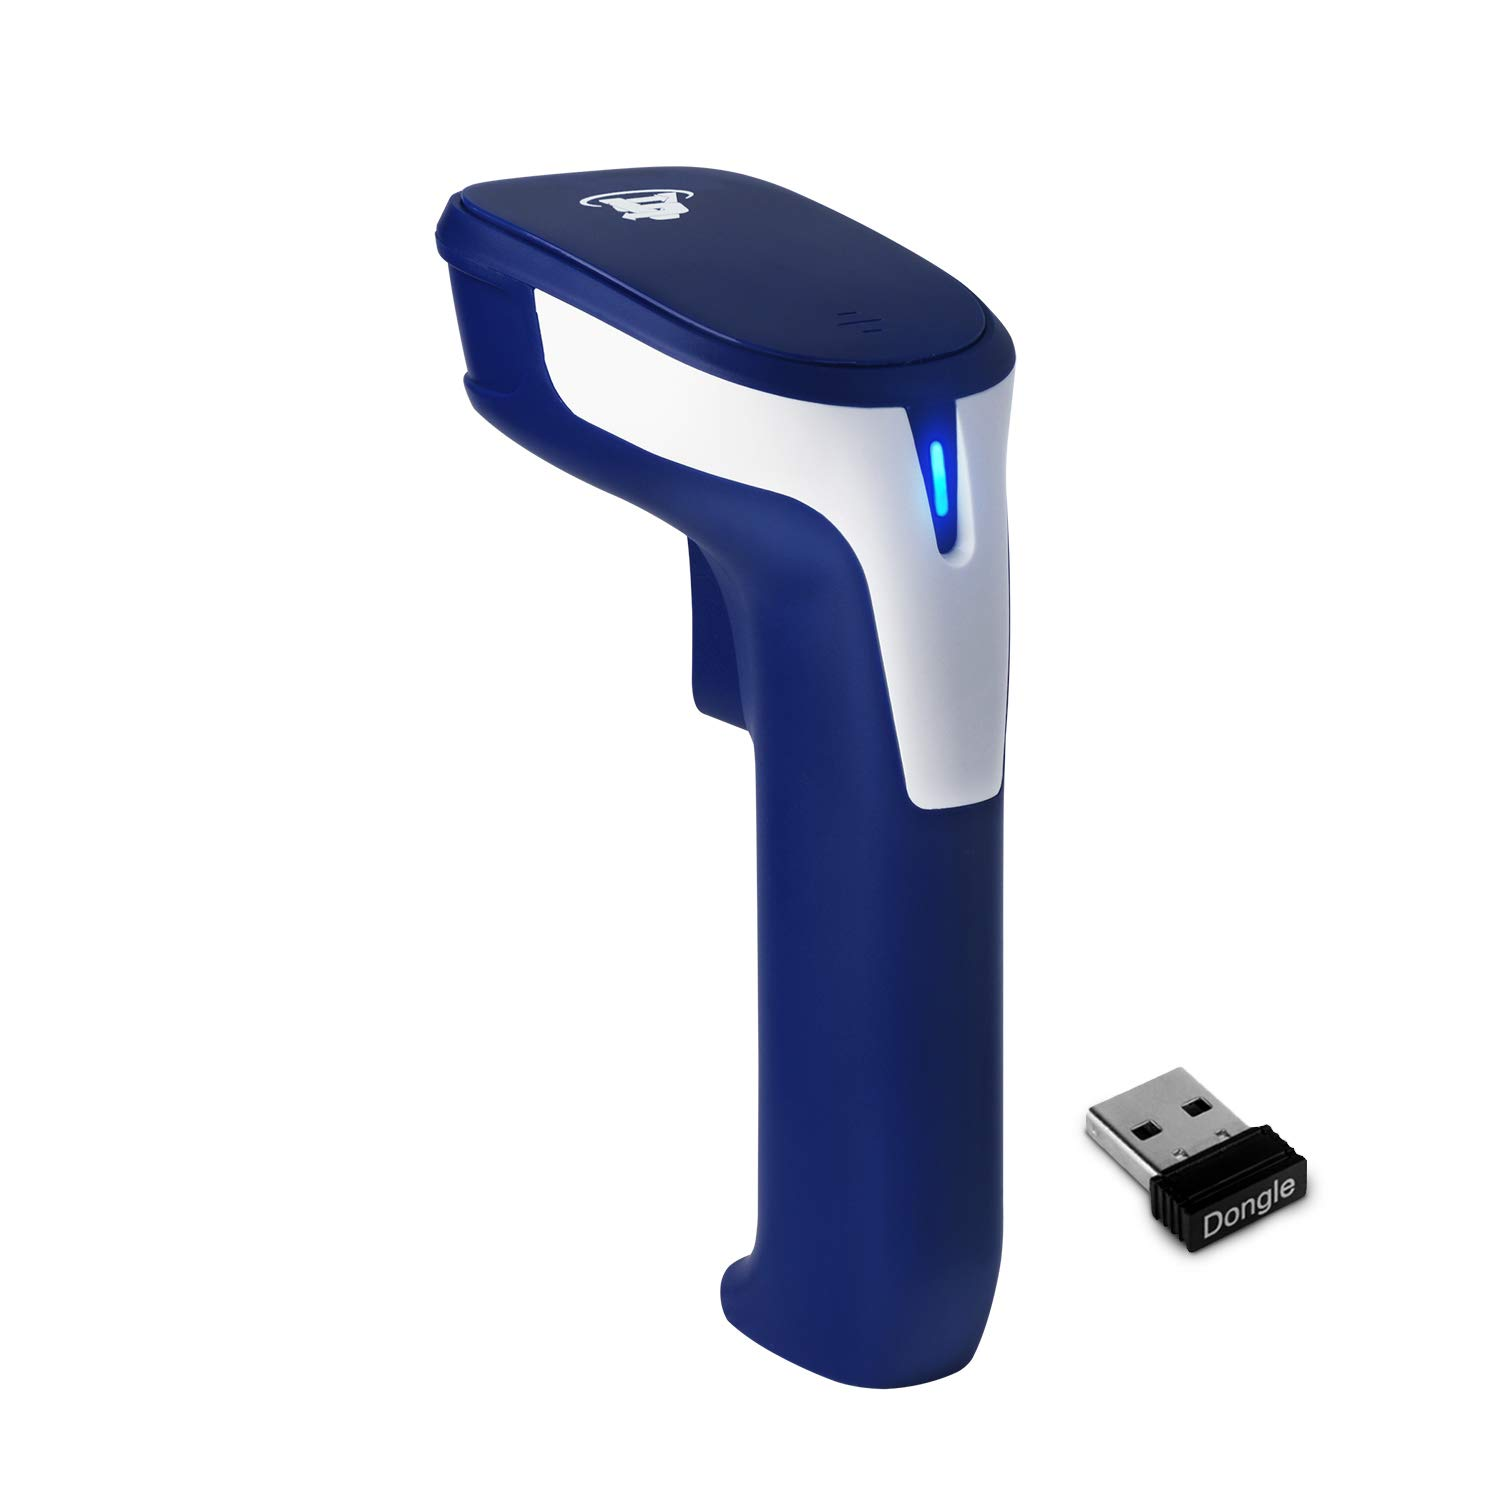 ScanAvenger 1D and 2D Portable Wireless Bluetooth Barcode Scanner: 3-in-1 - Cordless, Rechargeable Scan Gun for Inventory Management - Wireless, Handheld, USB Bar Code/QR Code Reader - Hand Scanner